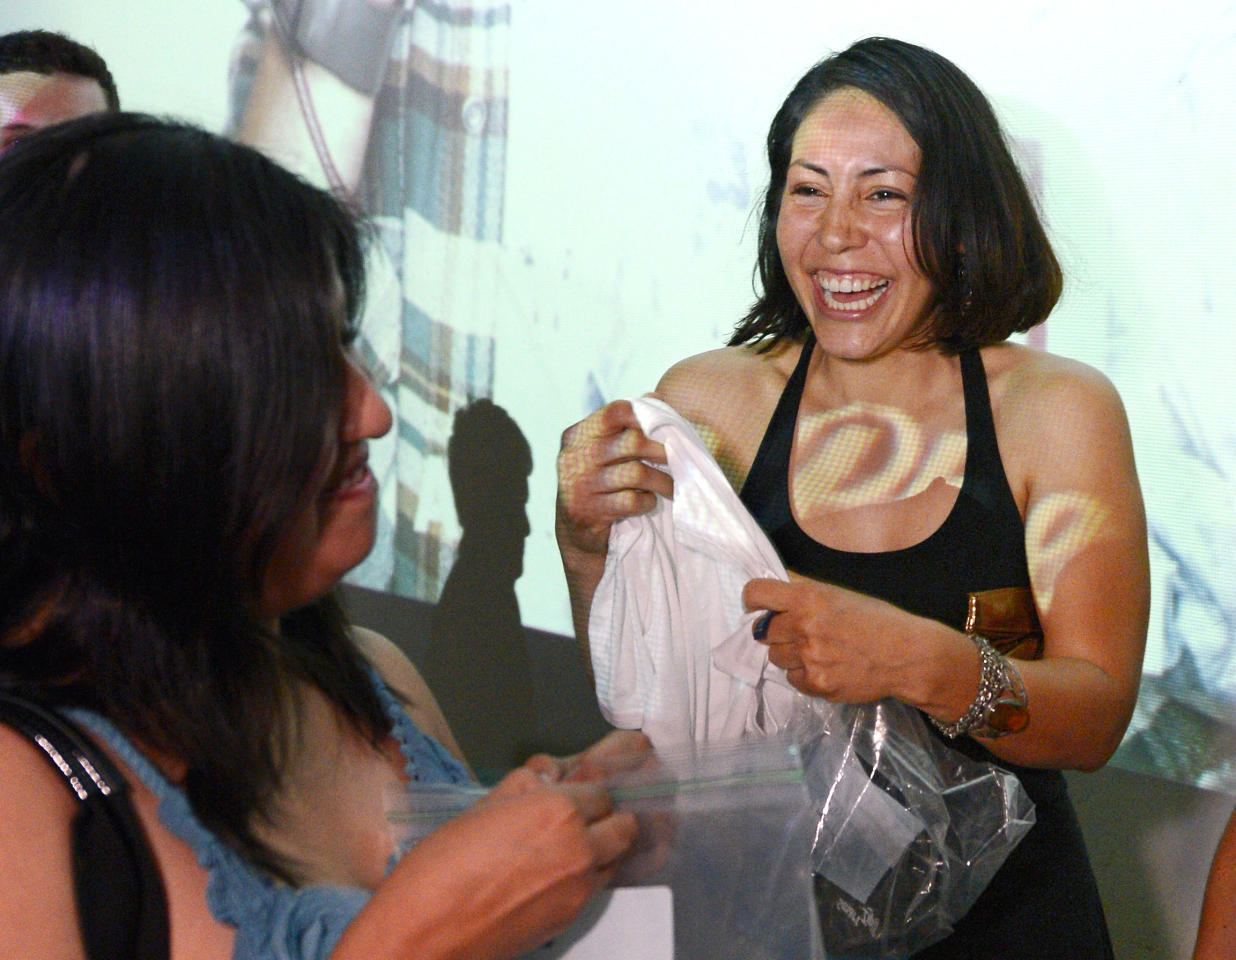 Karen Arellano, right, laughs as she smells shirts with her friend Christina Lopez during a pheromone party, Friday, June 15, 2012, in Los Angeles. The get-togethers, which have been held in New York and Los Angeles and are planned for other cities, require guests to submit a slept-in T-shirt that will be sniffed by other participants. Then you can pick your partner based on scent. (AP Photo/Mark J. Terrill)